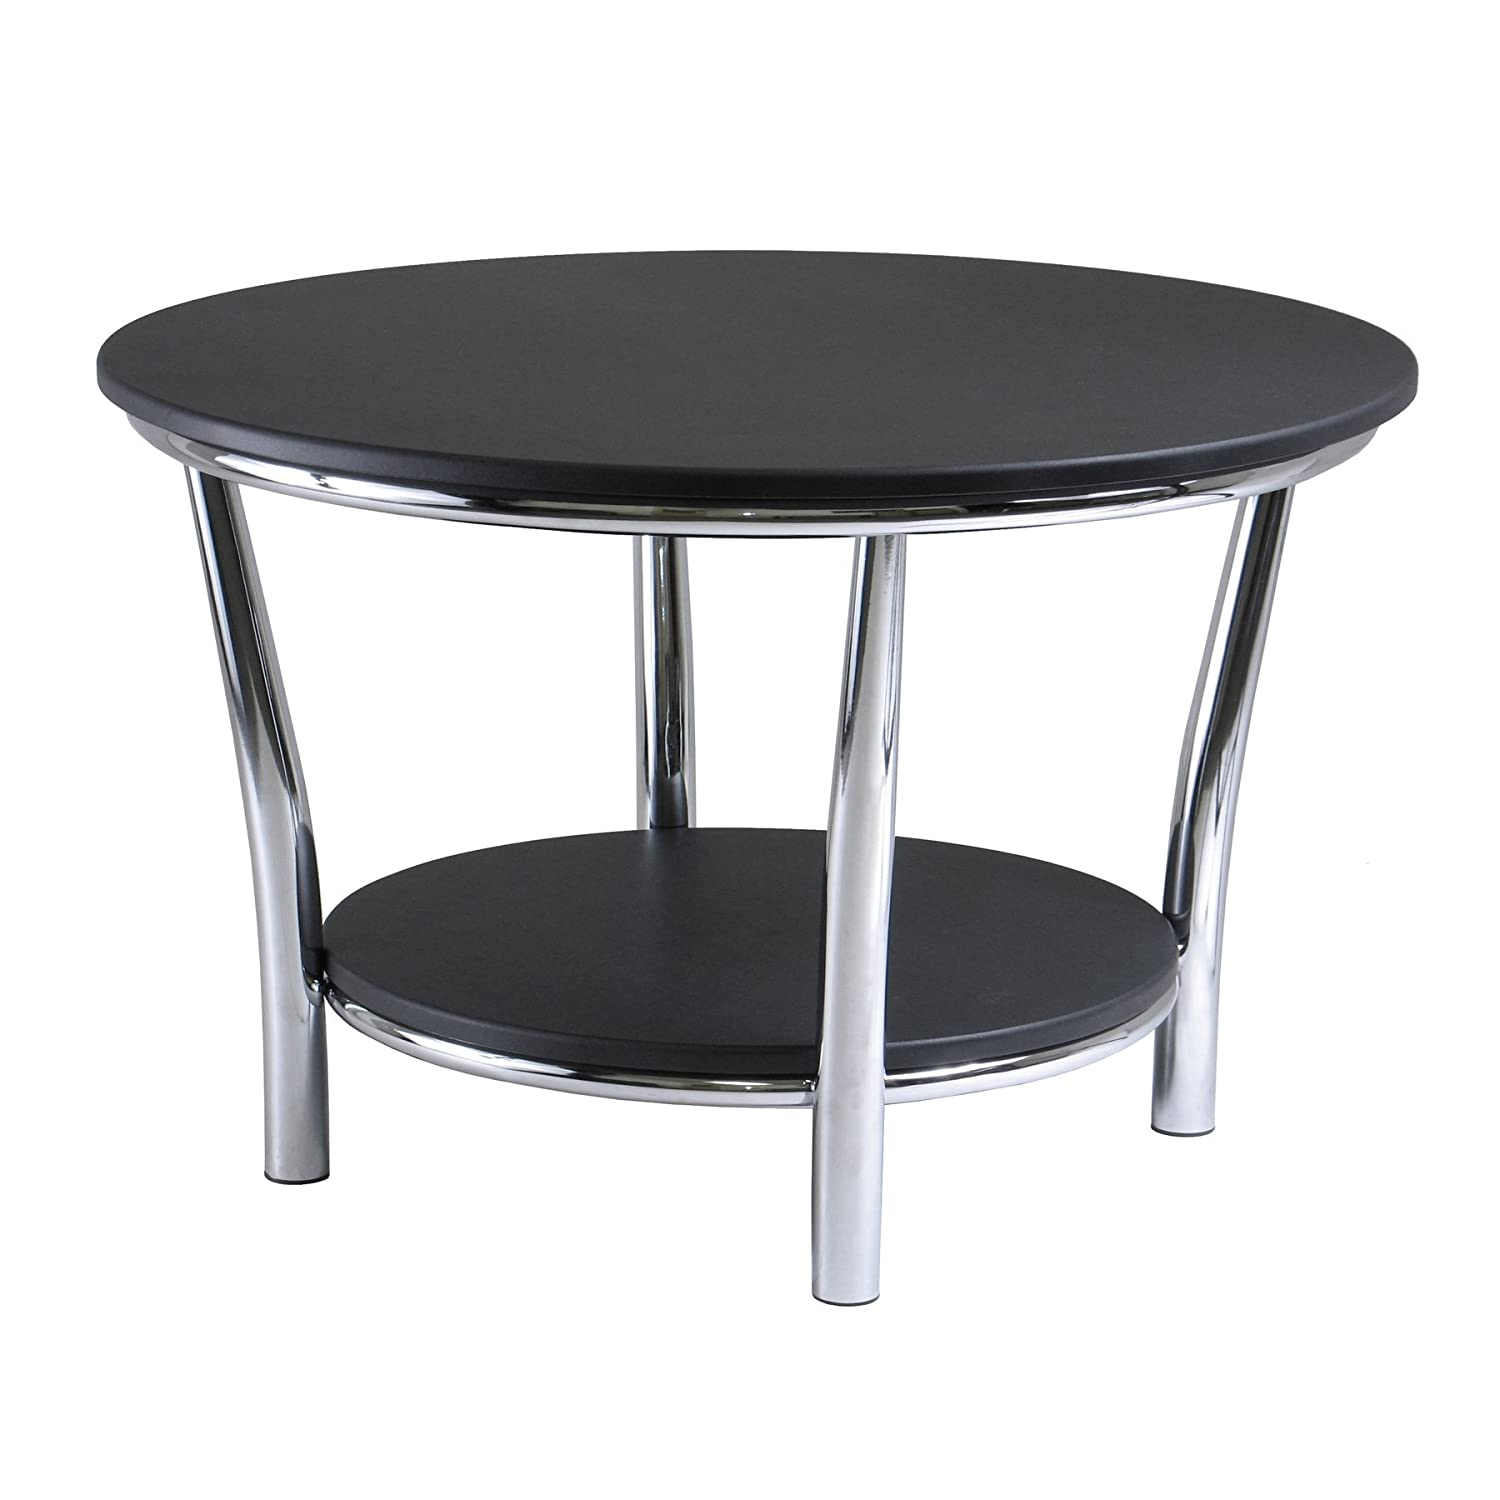 Amazon.com: Winsome Wood Maya Round Coffee Table, Black Top, Metal Legs:  Kitchen U0026 Dining